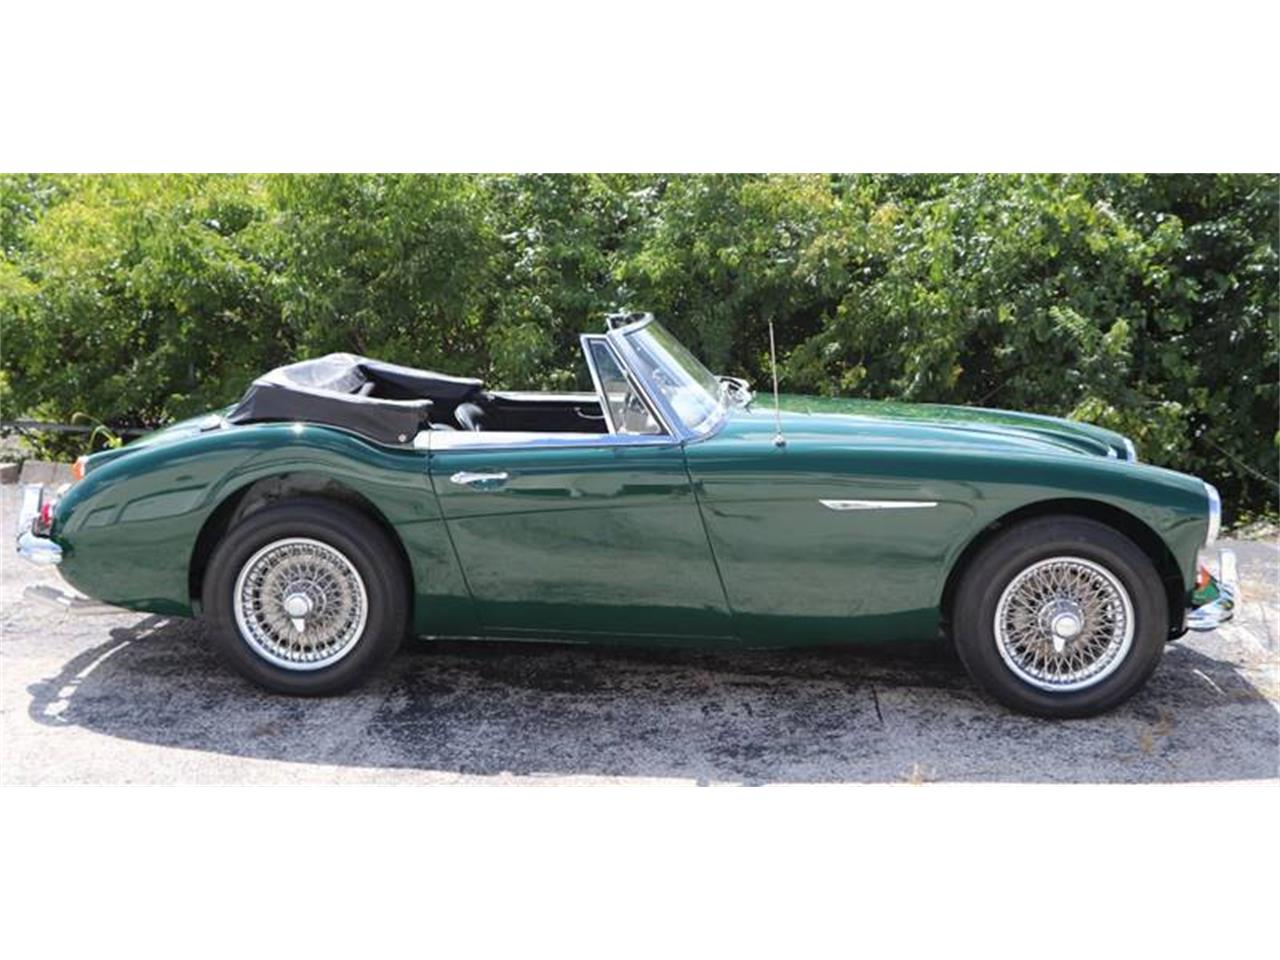 1967 Austin-Healey 3000 Mark III BJ8 for sale in St Louis, MO – photo 2